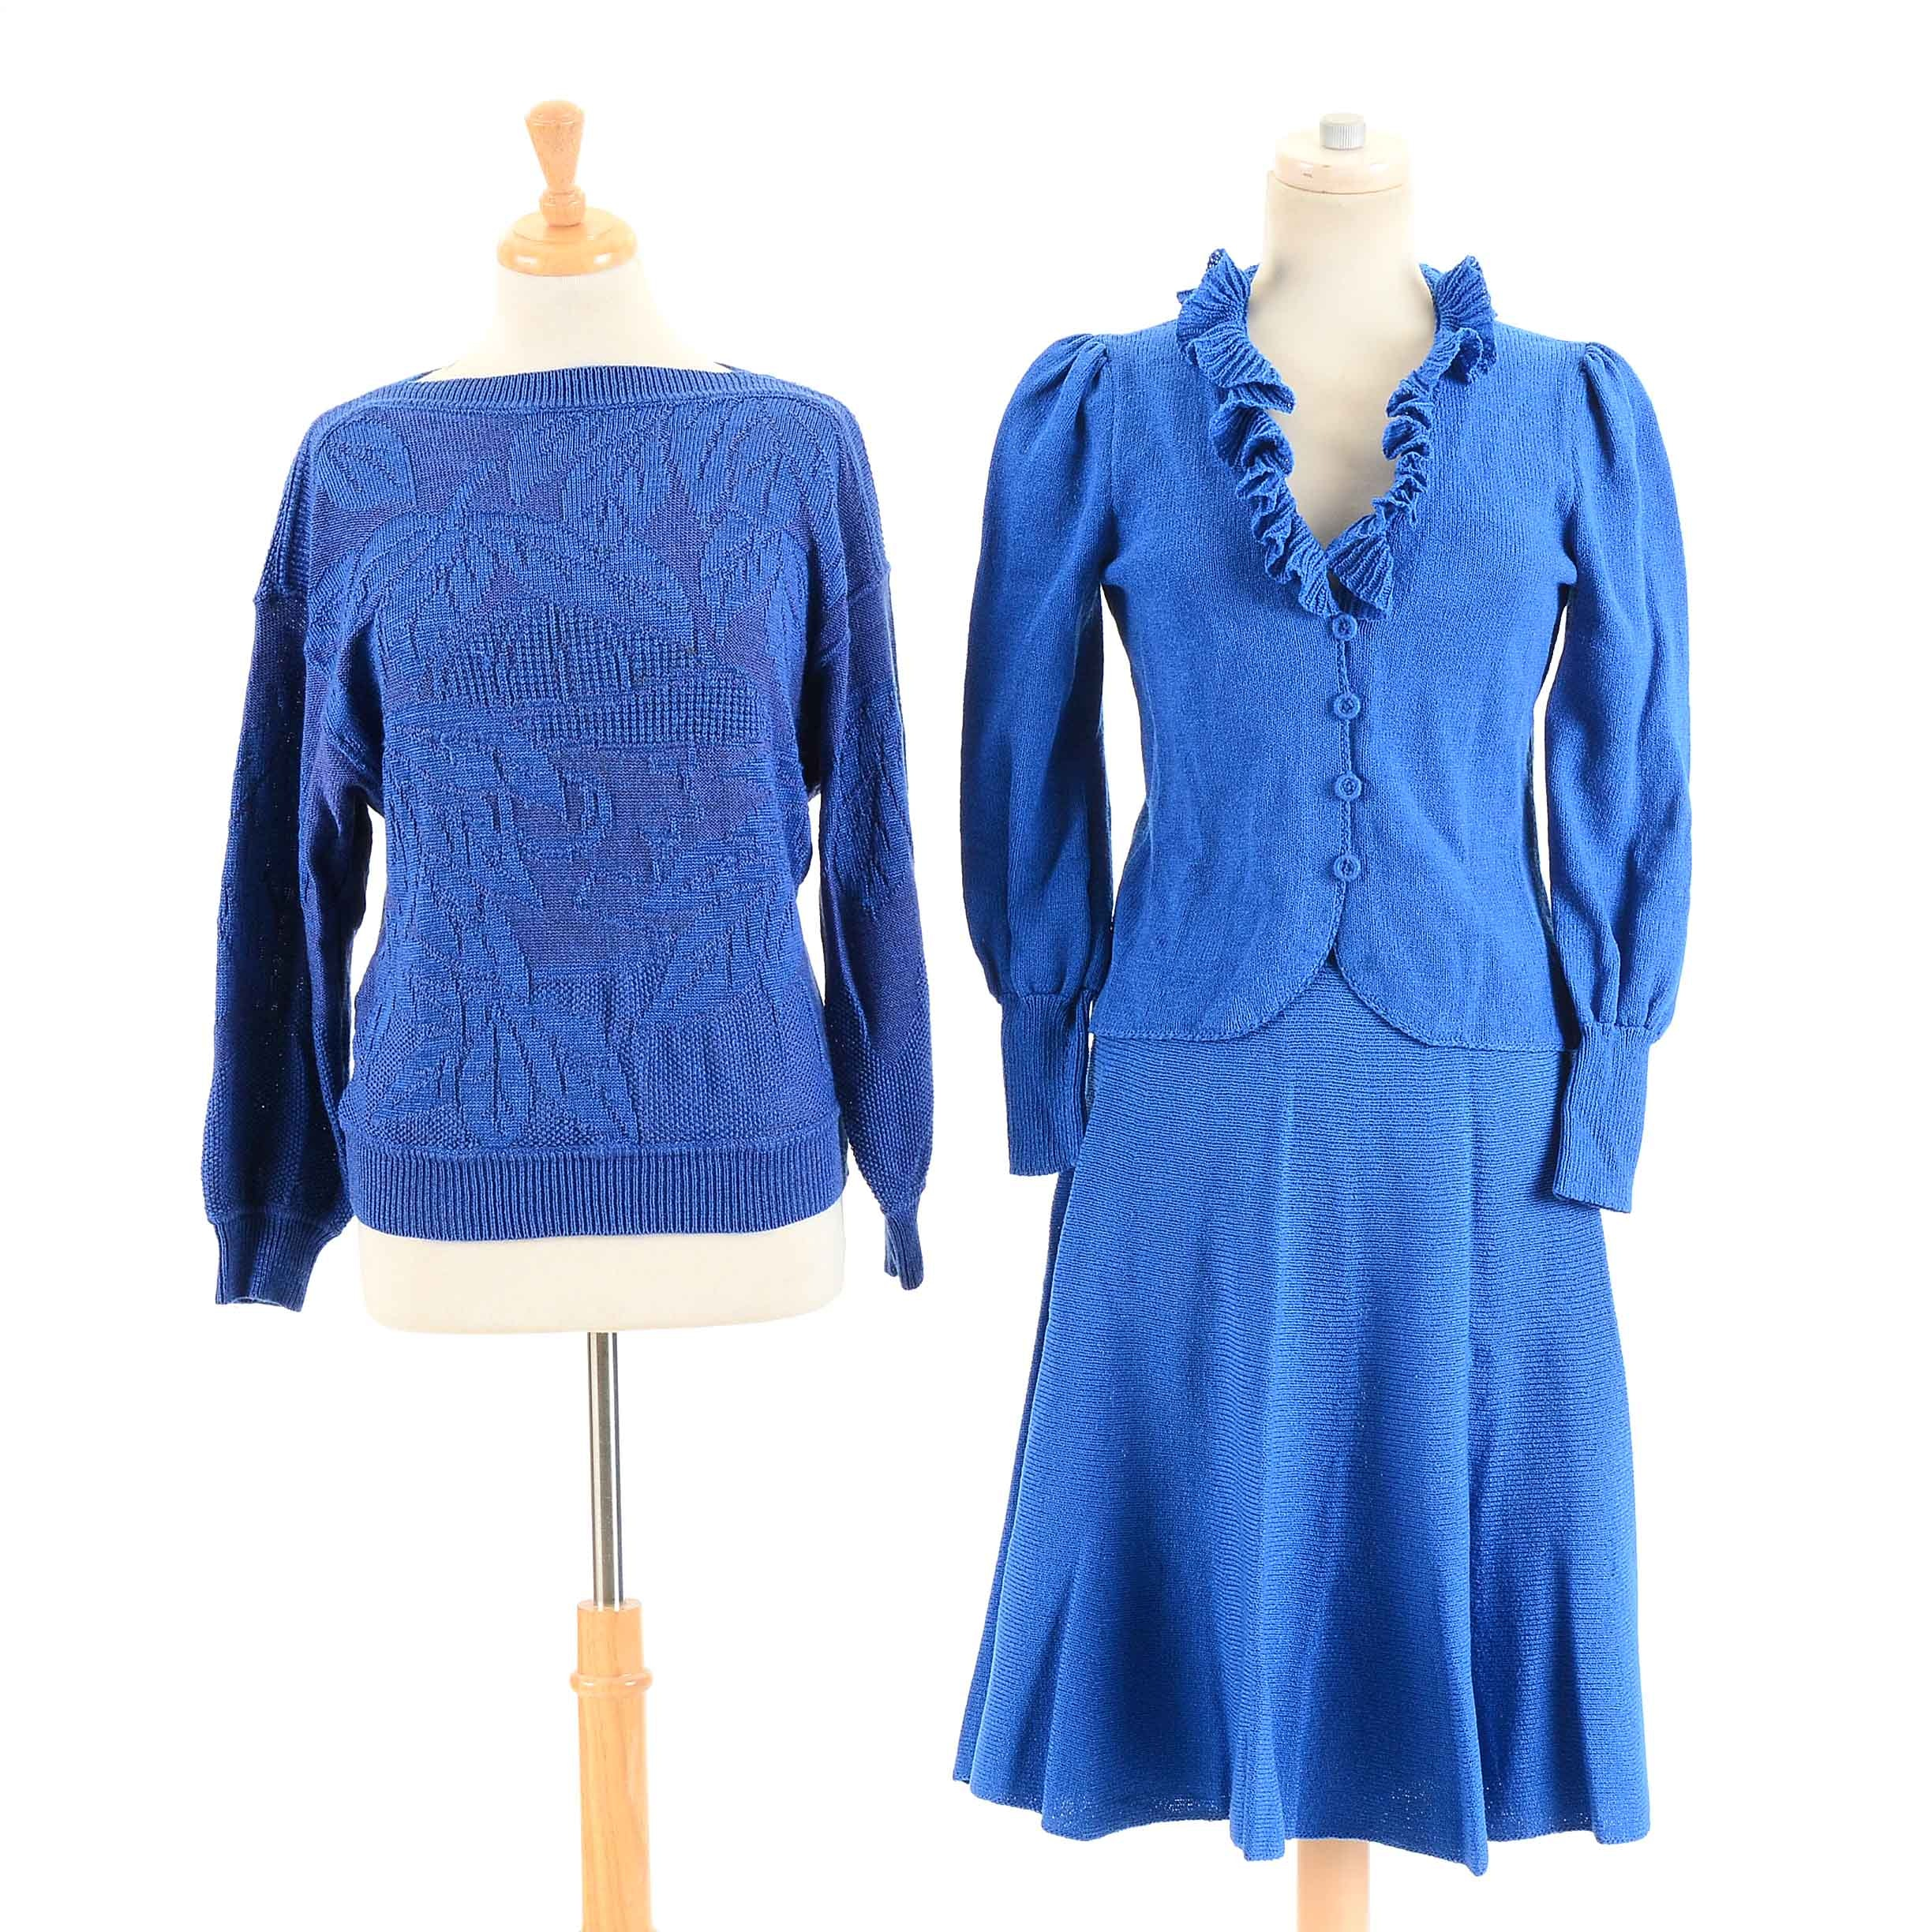 Women's Vintage Blue Knitwear